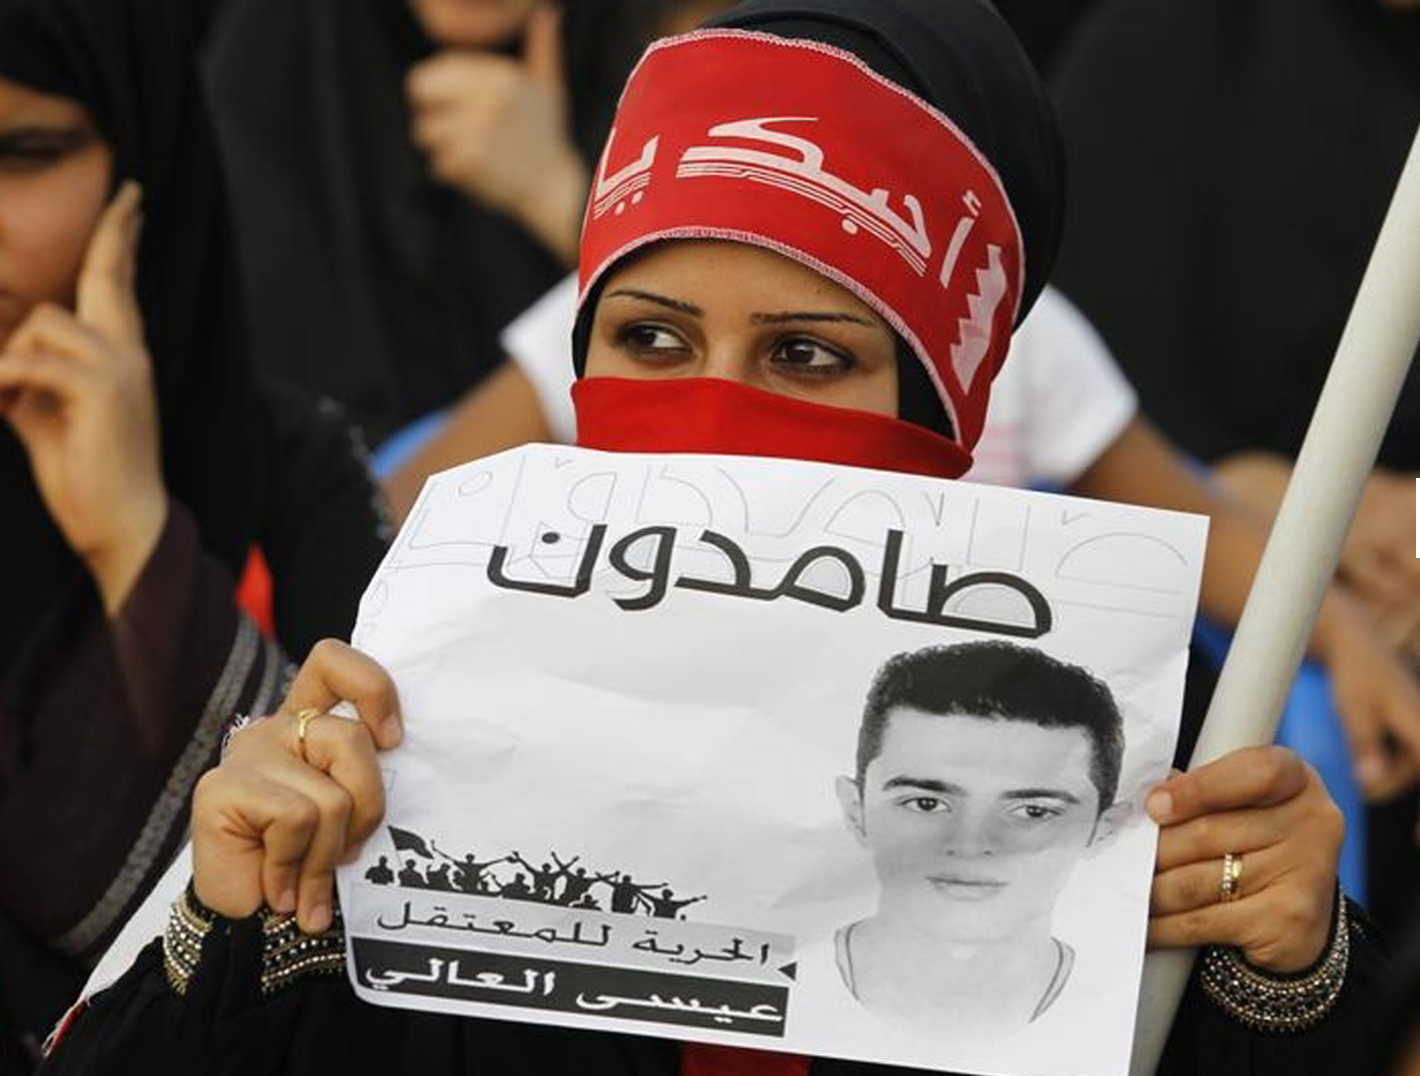 UK Plans to Deport Torture Survivor Facing Imprisonment in Bahrain